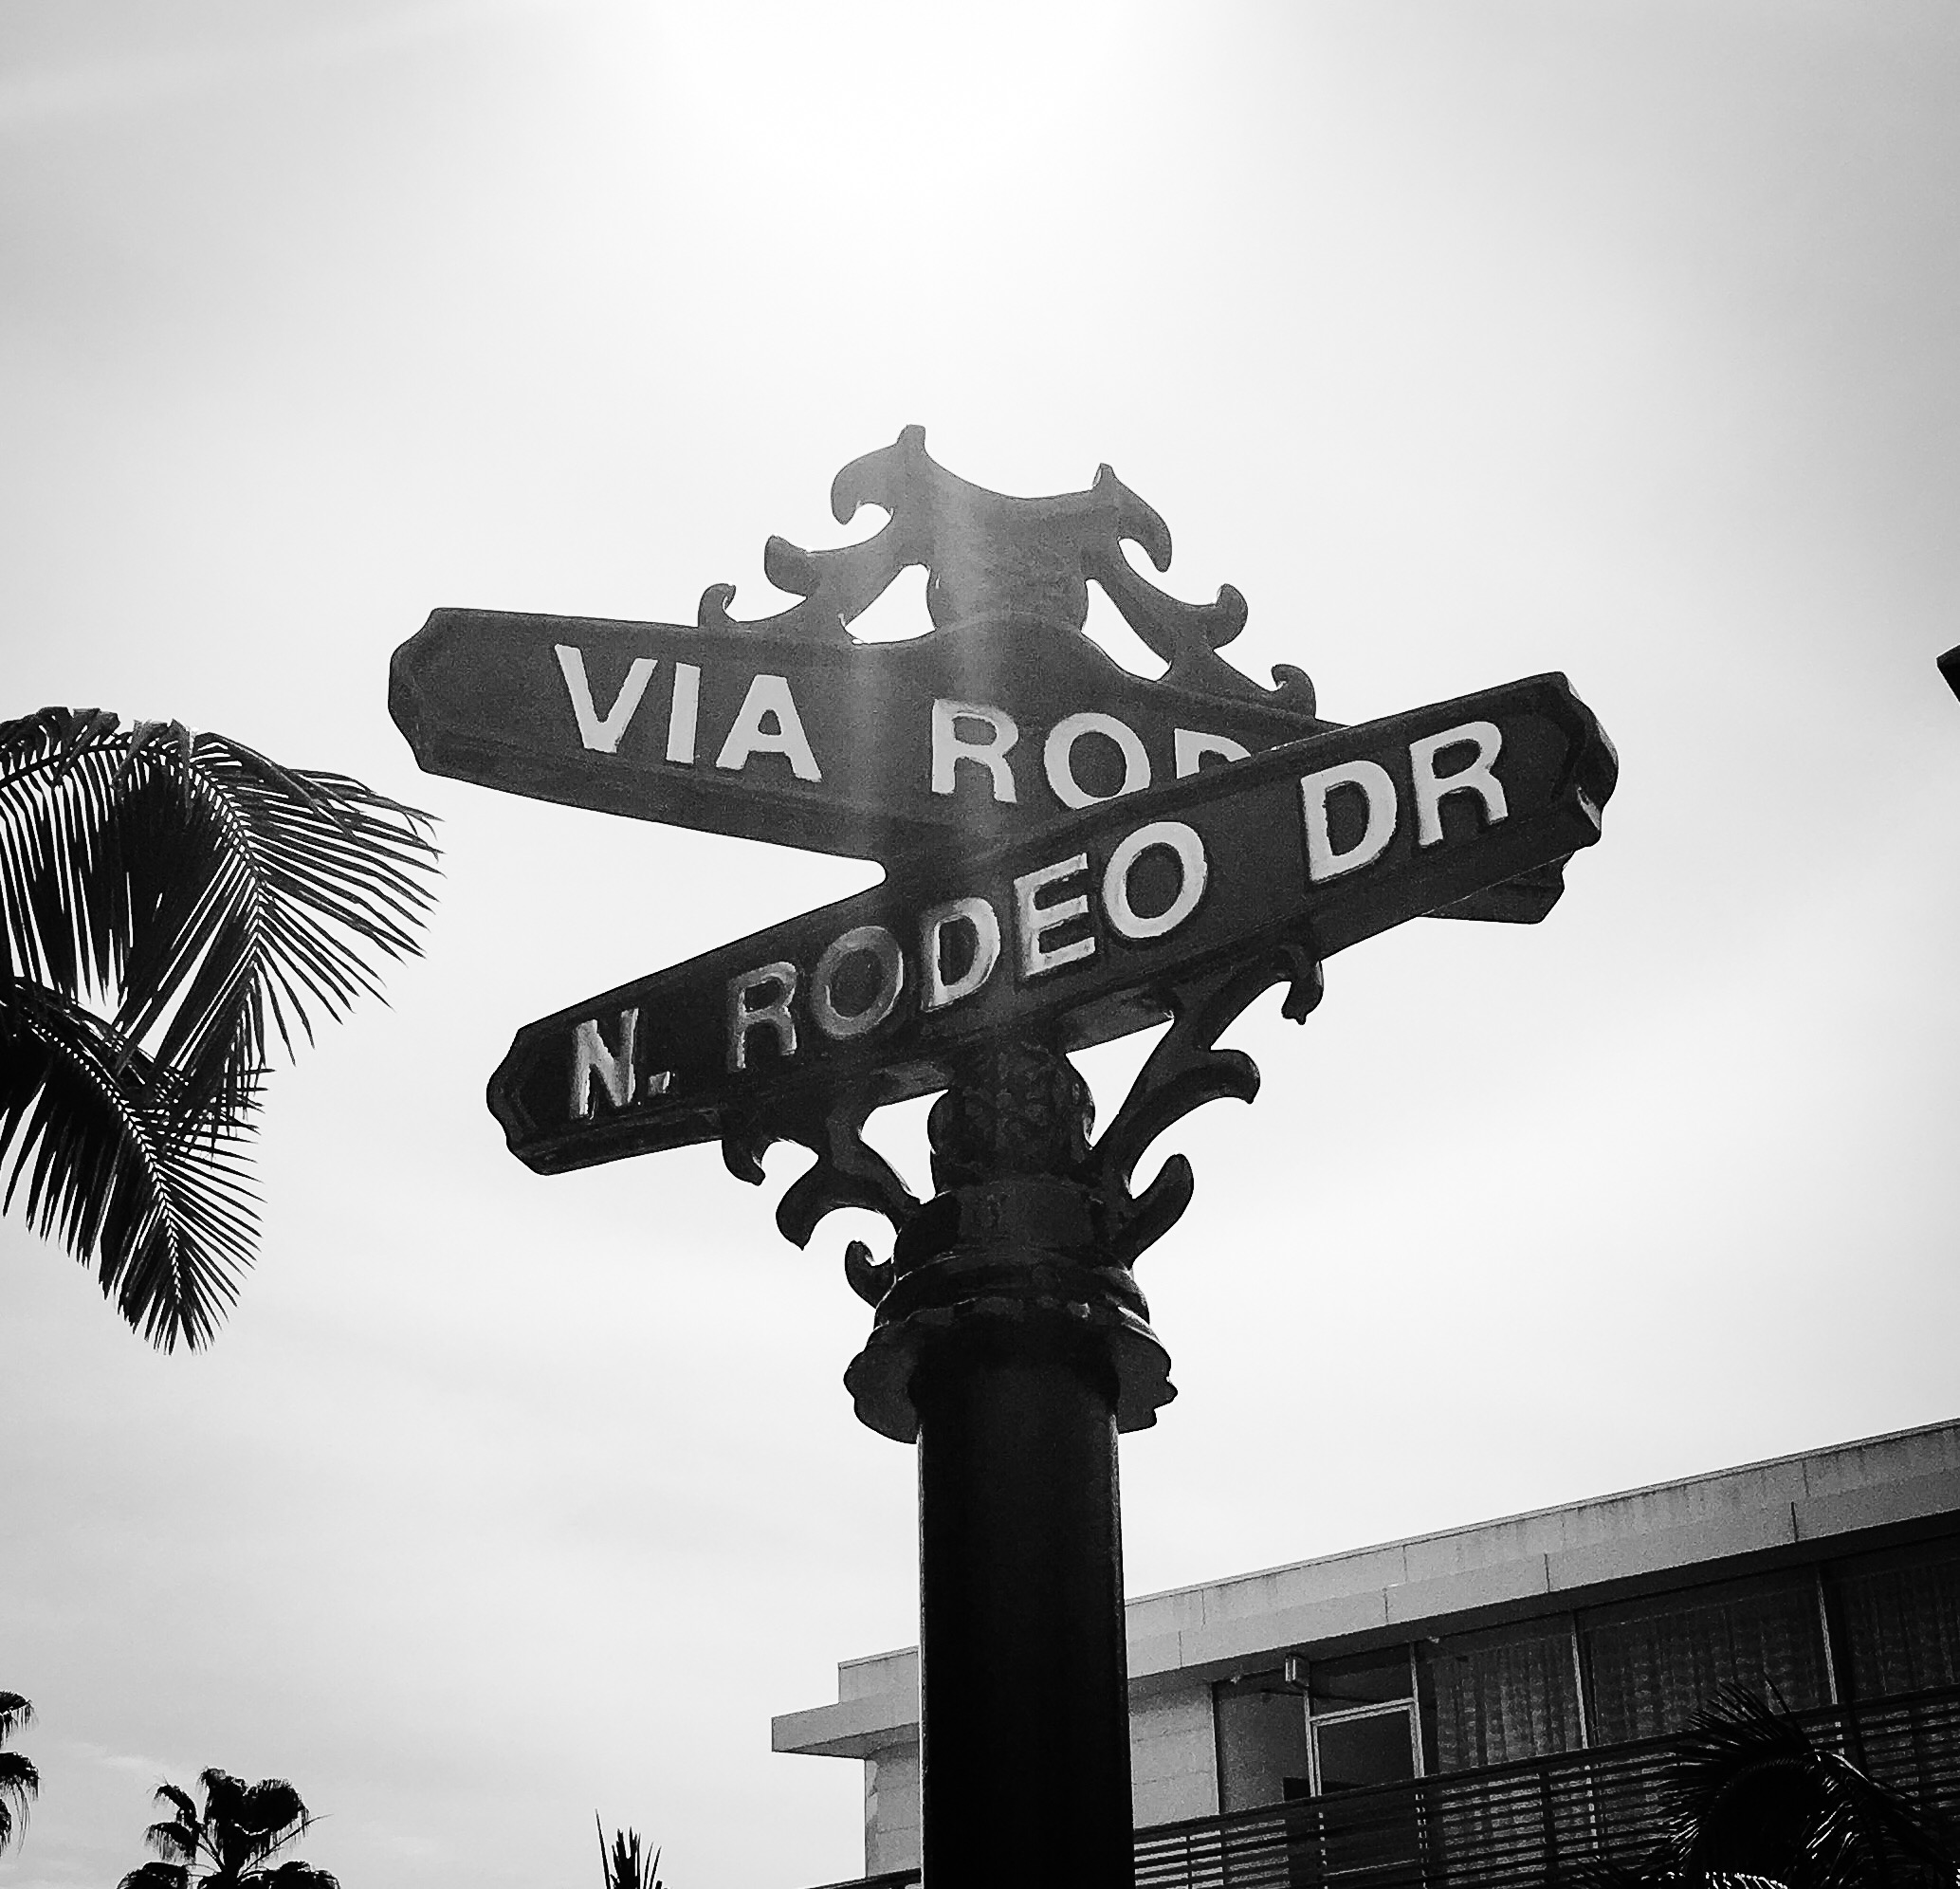 Rodeo Drive-The Most Expensive street in the whole world